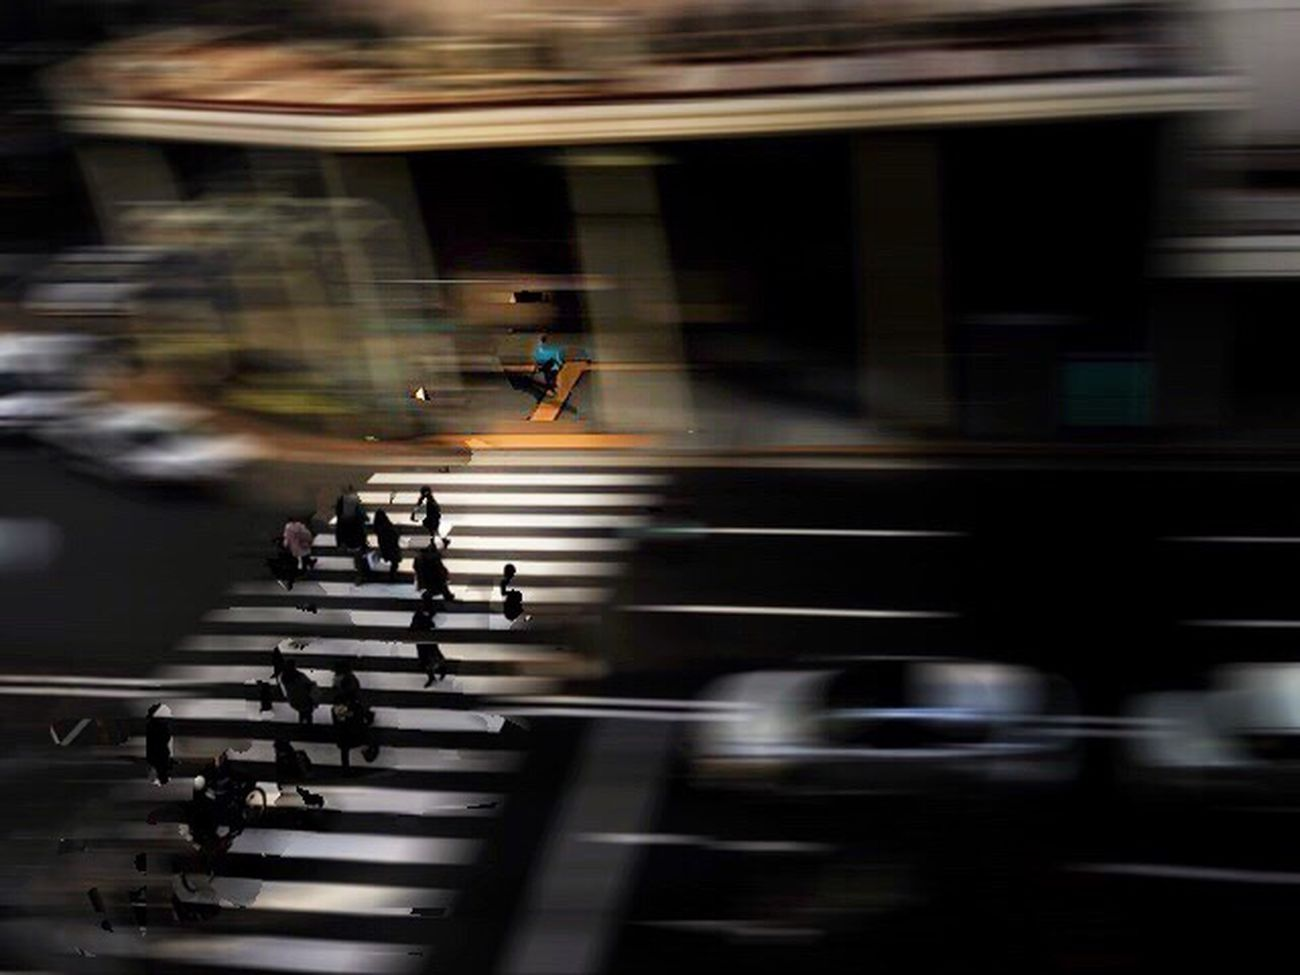 Light And Shadow People Watching Japan Photography Street Photography People FUJIFILM X-T1 Blurred Motion